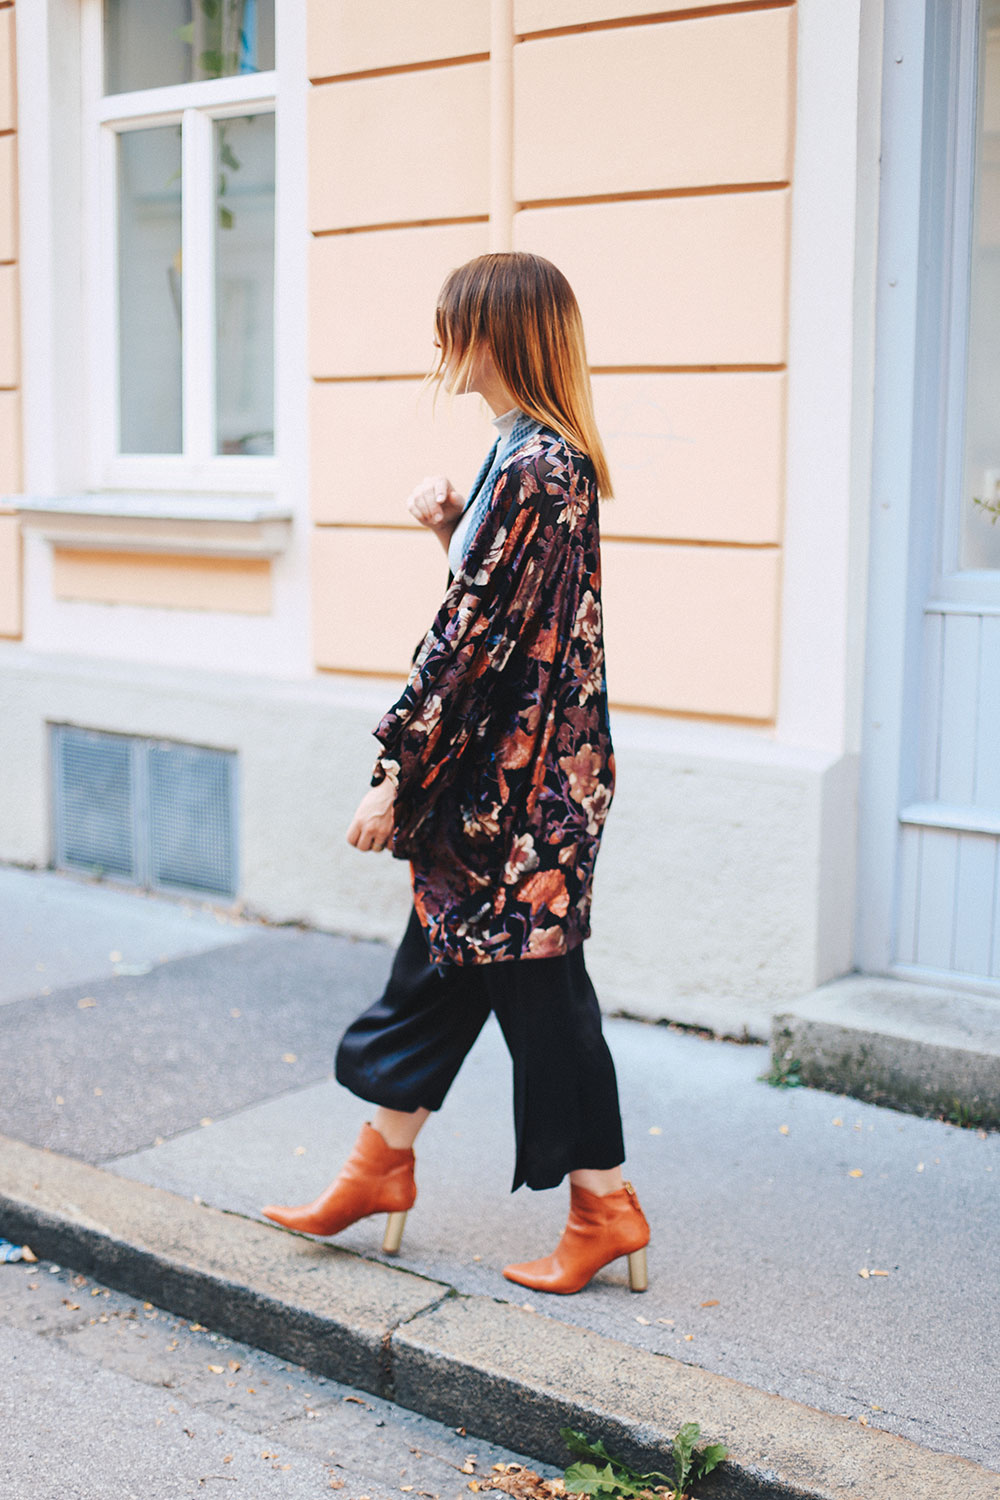 Samt-Kimono mit Blumenprint, Satin-Culotte, Boots in Orange, Zara Outfit, H&M Outfit, Streetstyle, Modeblog, Fashionblog, whoismocca.com